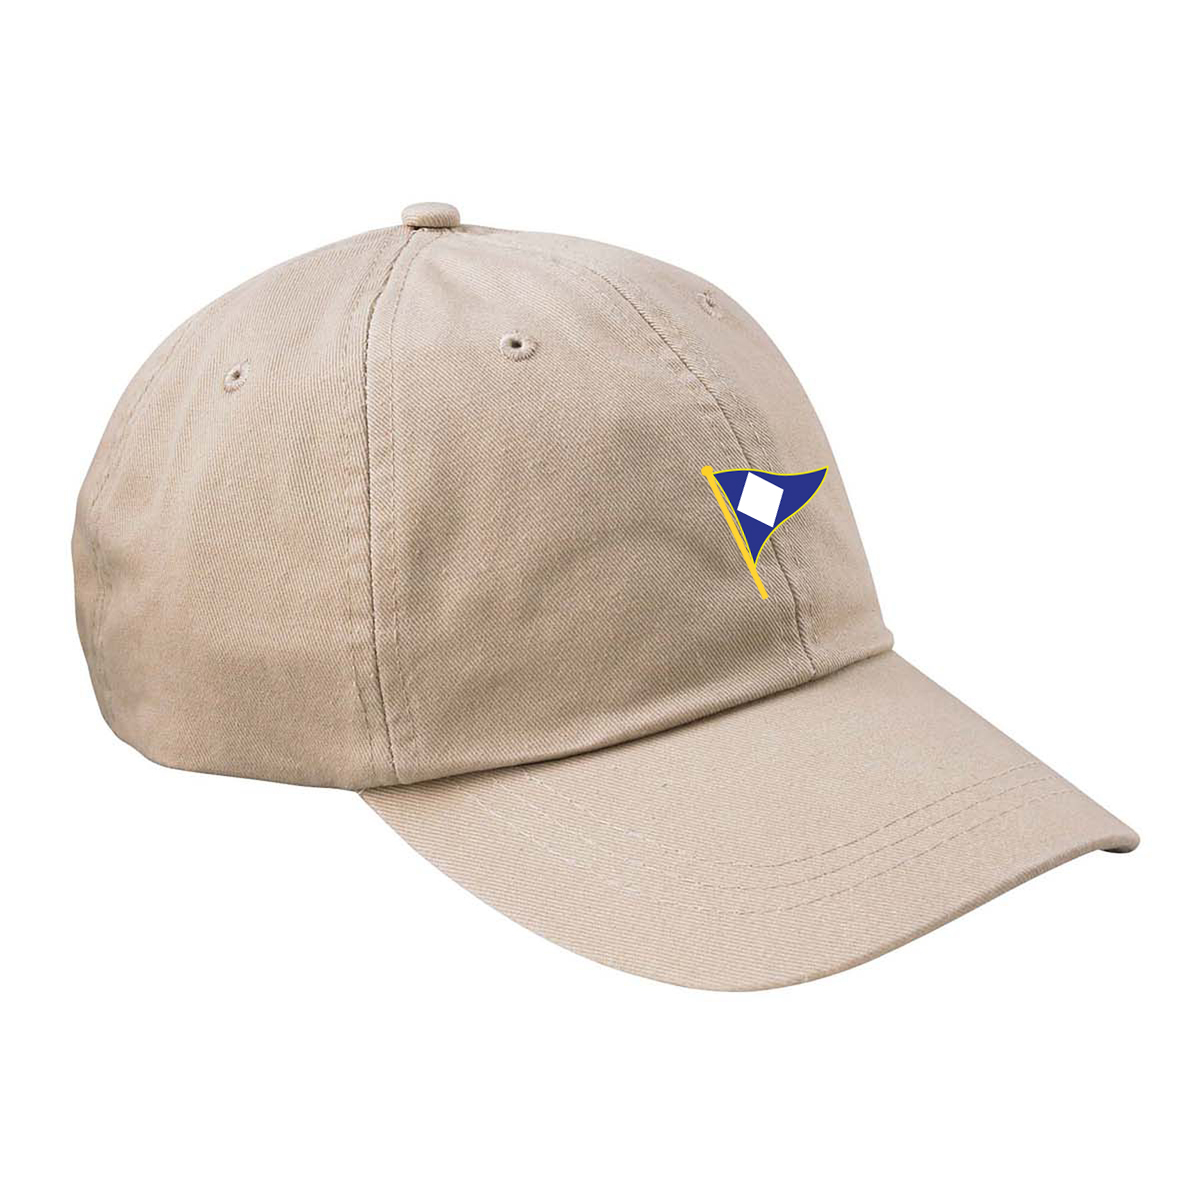 Fishers Island Yacht Club - Baseball Cap